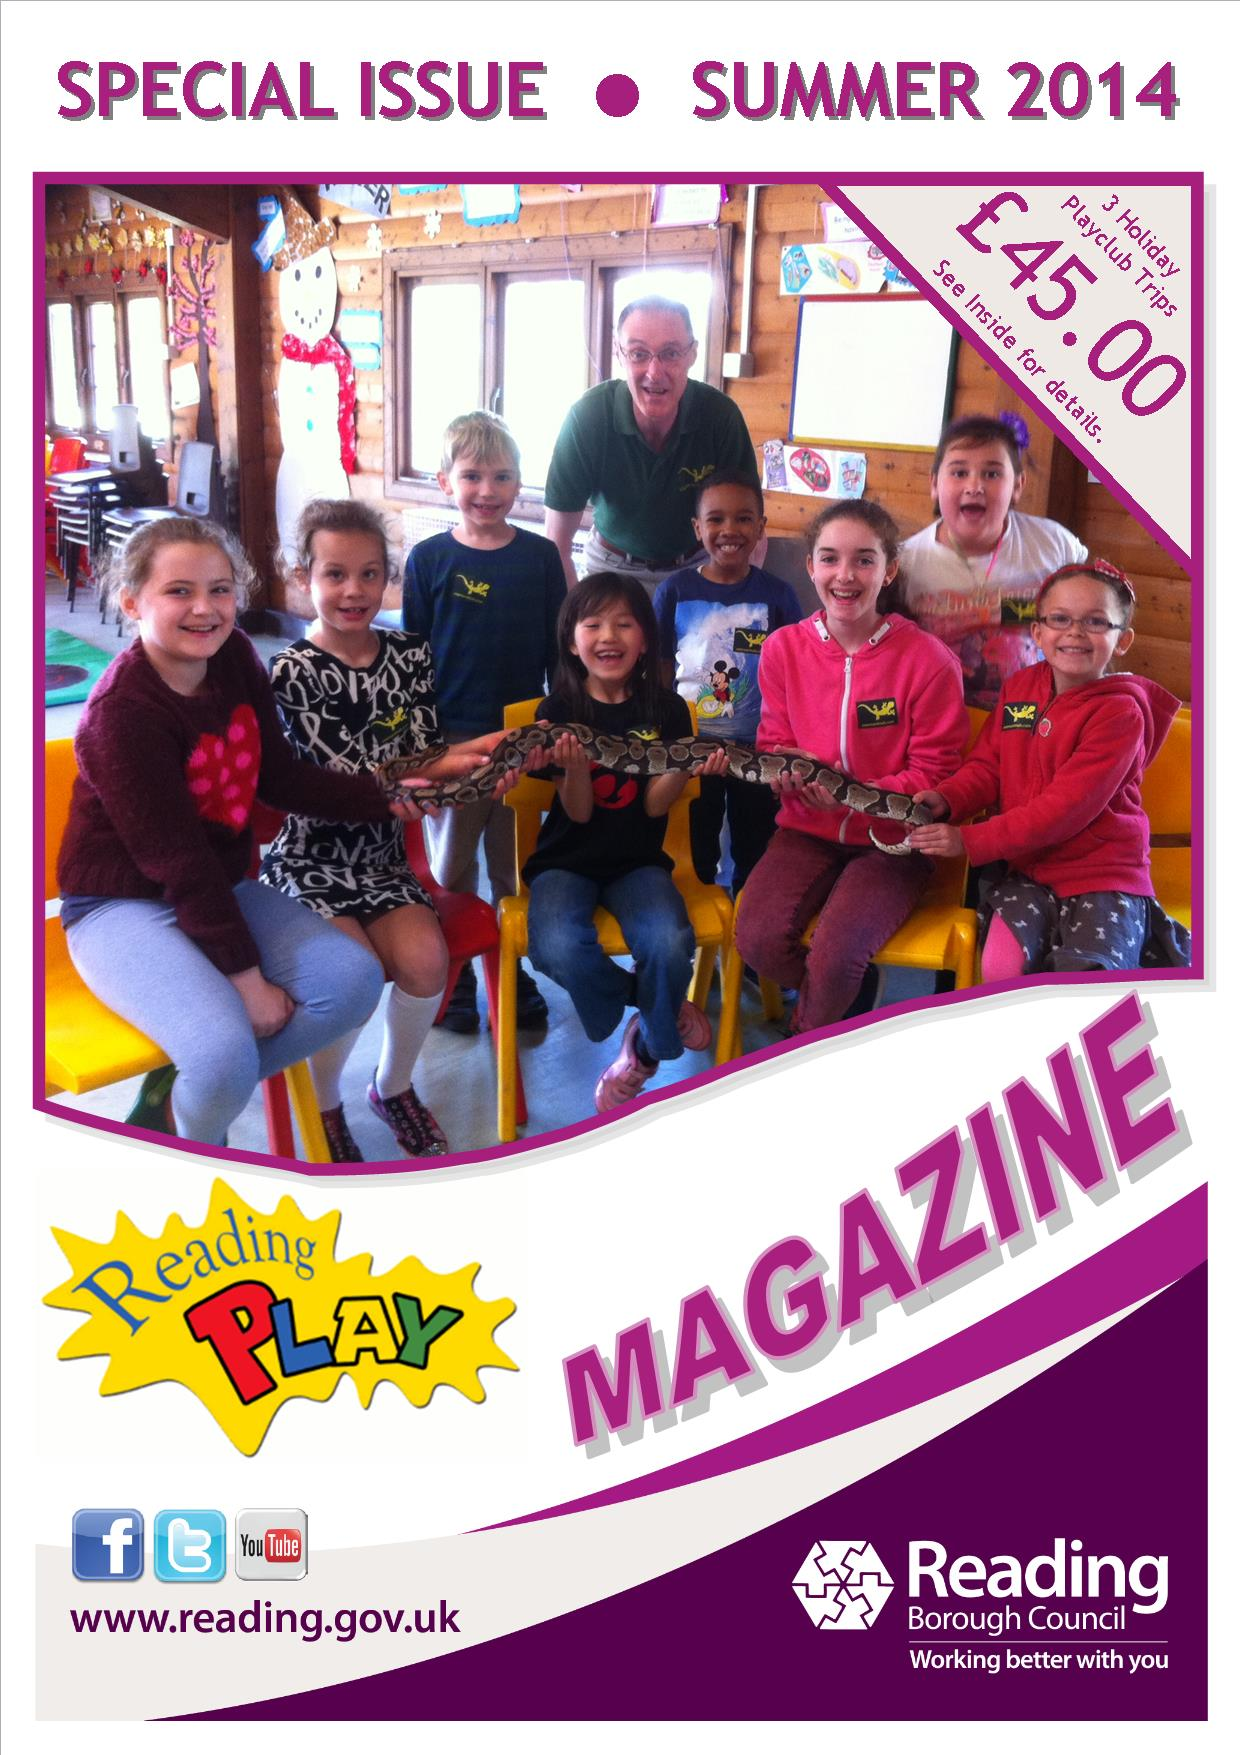 Reading Play Magazine - Summer 2014